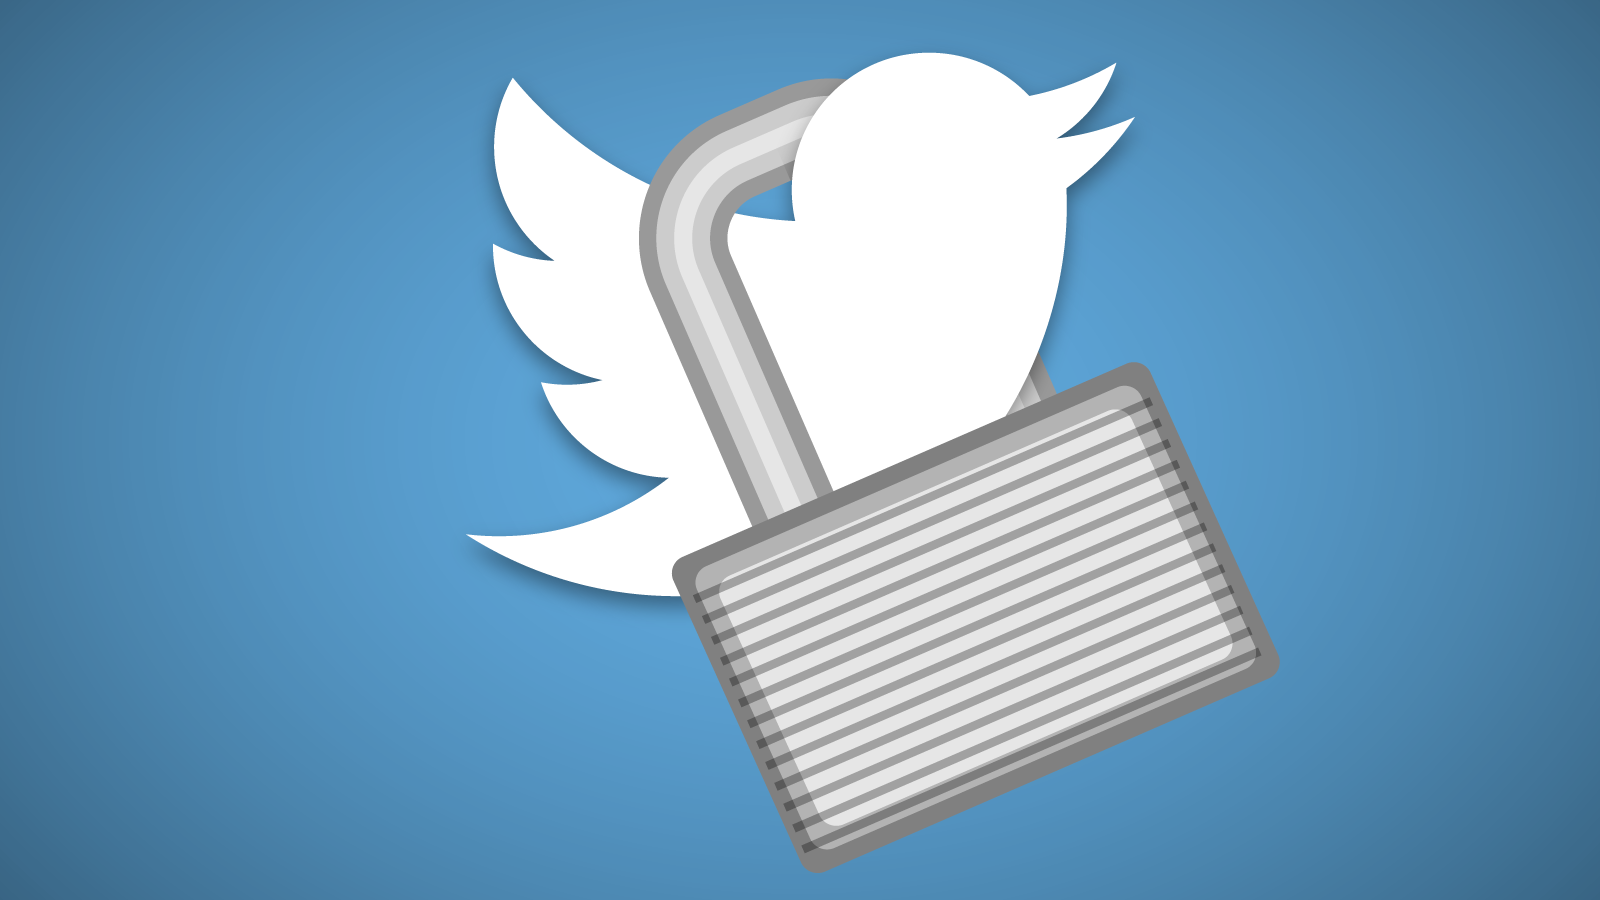 Twitter is toying with encrypted direct messaging on the Android app